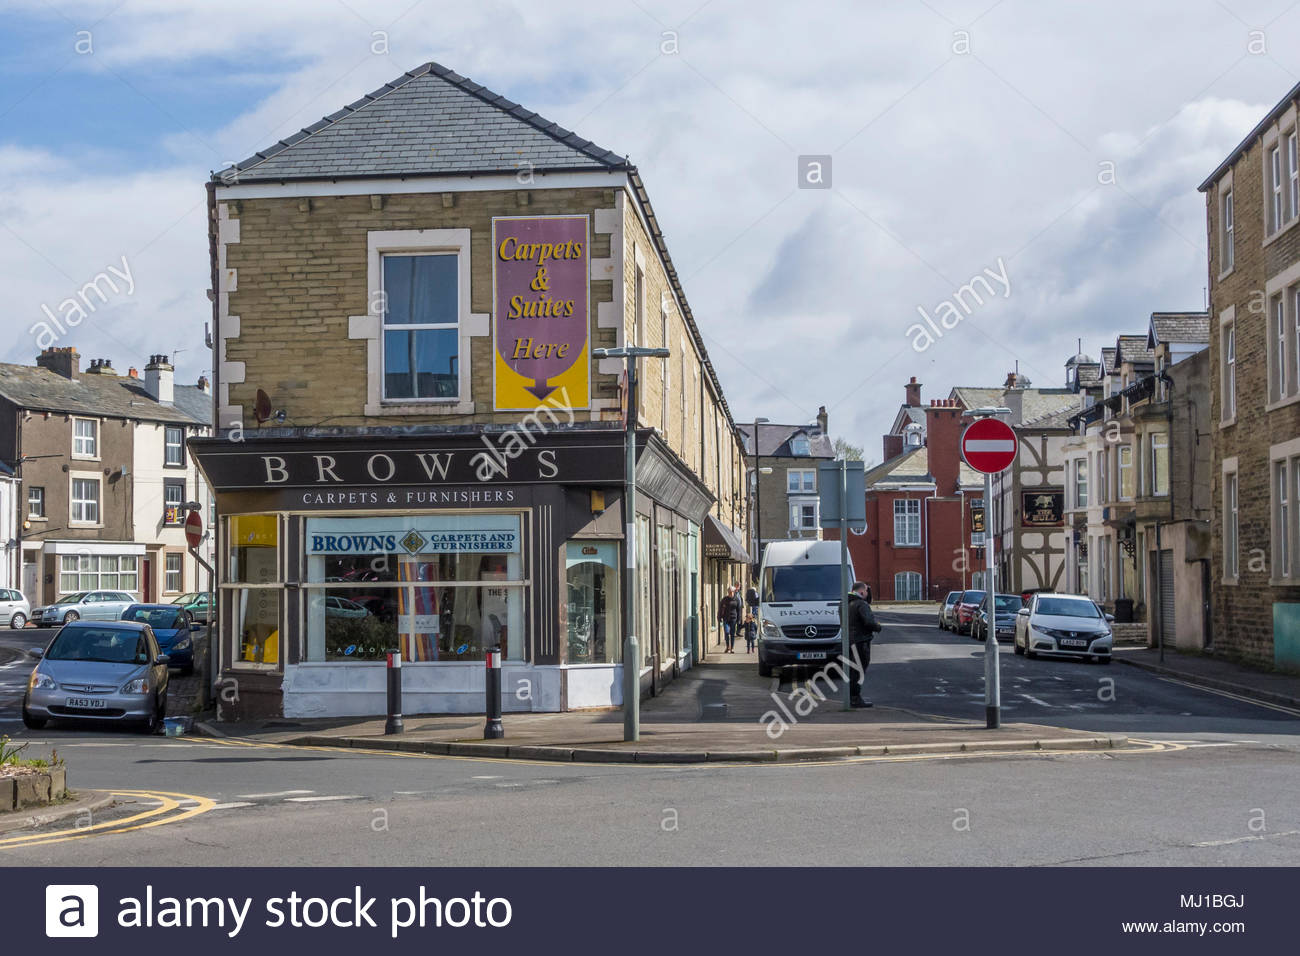 Browns, a family run furniture and carpet shop in Morecambe, Lancashire, UK - Stock Image